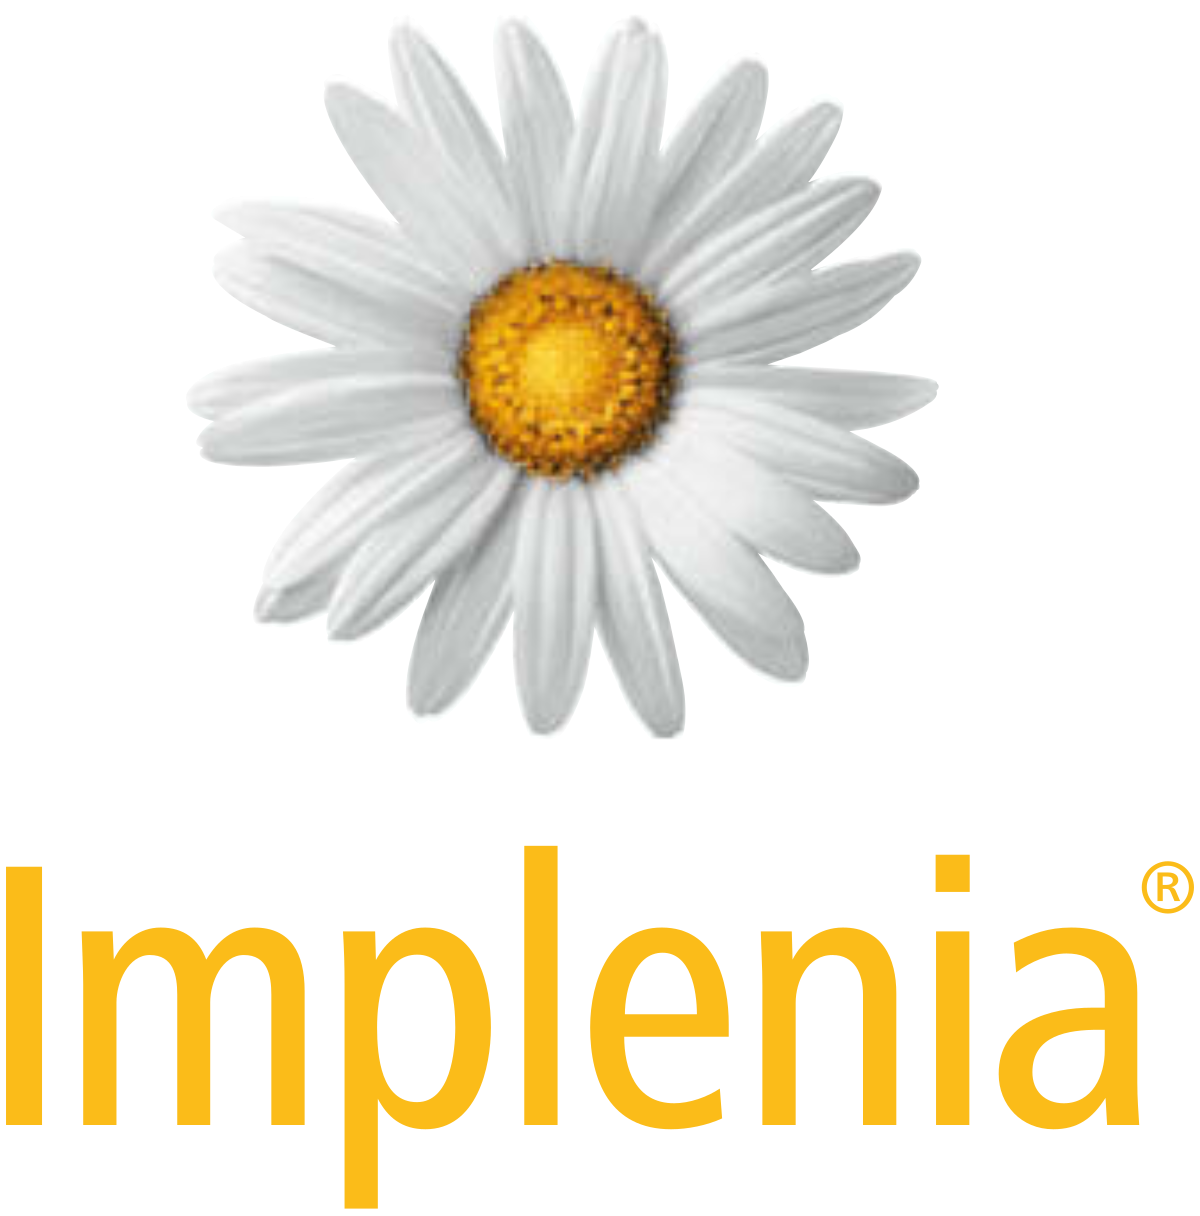 Implenia_logo.png